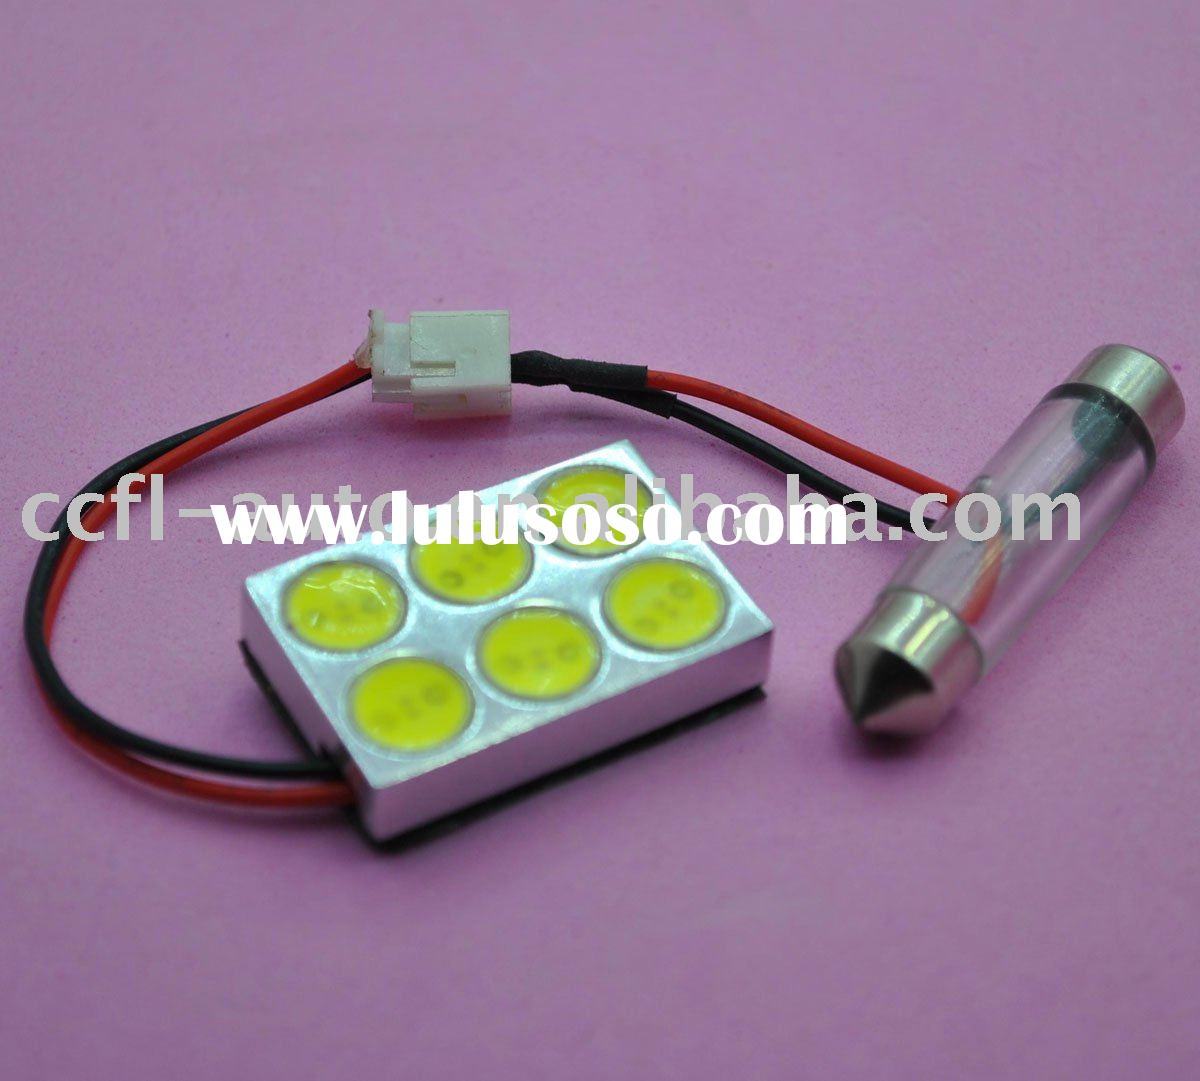 Auto LED high power lamp 6W. come with universal connector for T10, BA9S, festoon fitting